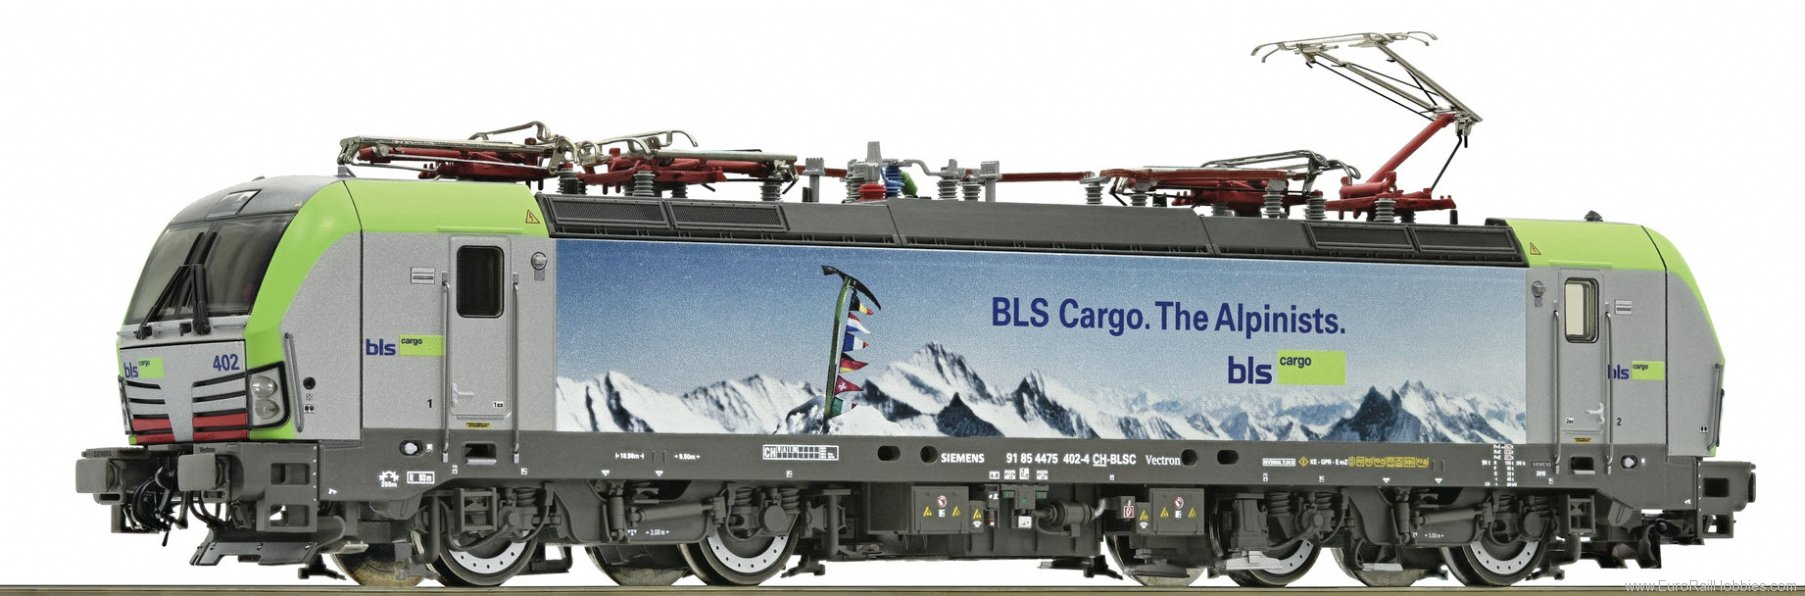 Roco 73920 Electric locomotive Re 475, BLS Cargo (Digita